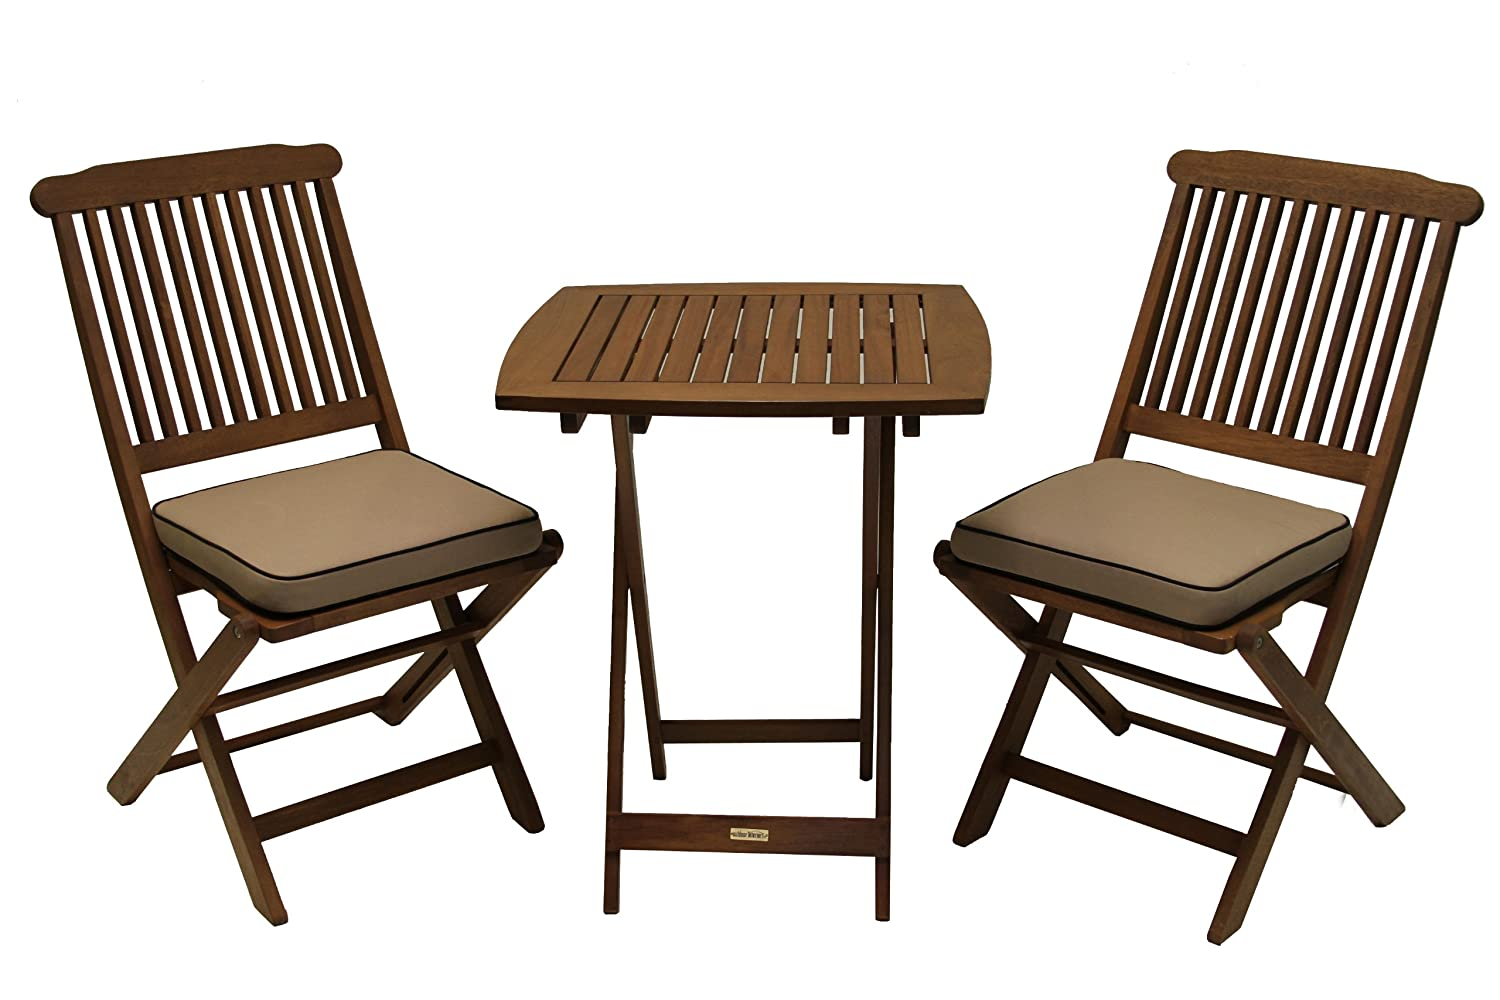 Amazon.com: Outdoor Interiors Eucalyptus 3 Piece Square Bistro Outdoor  Furniture Set - includes cushions: Garden & Outdoor